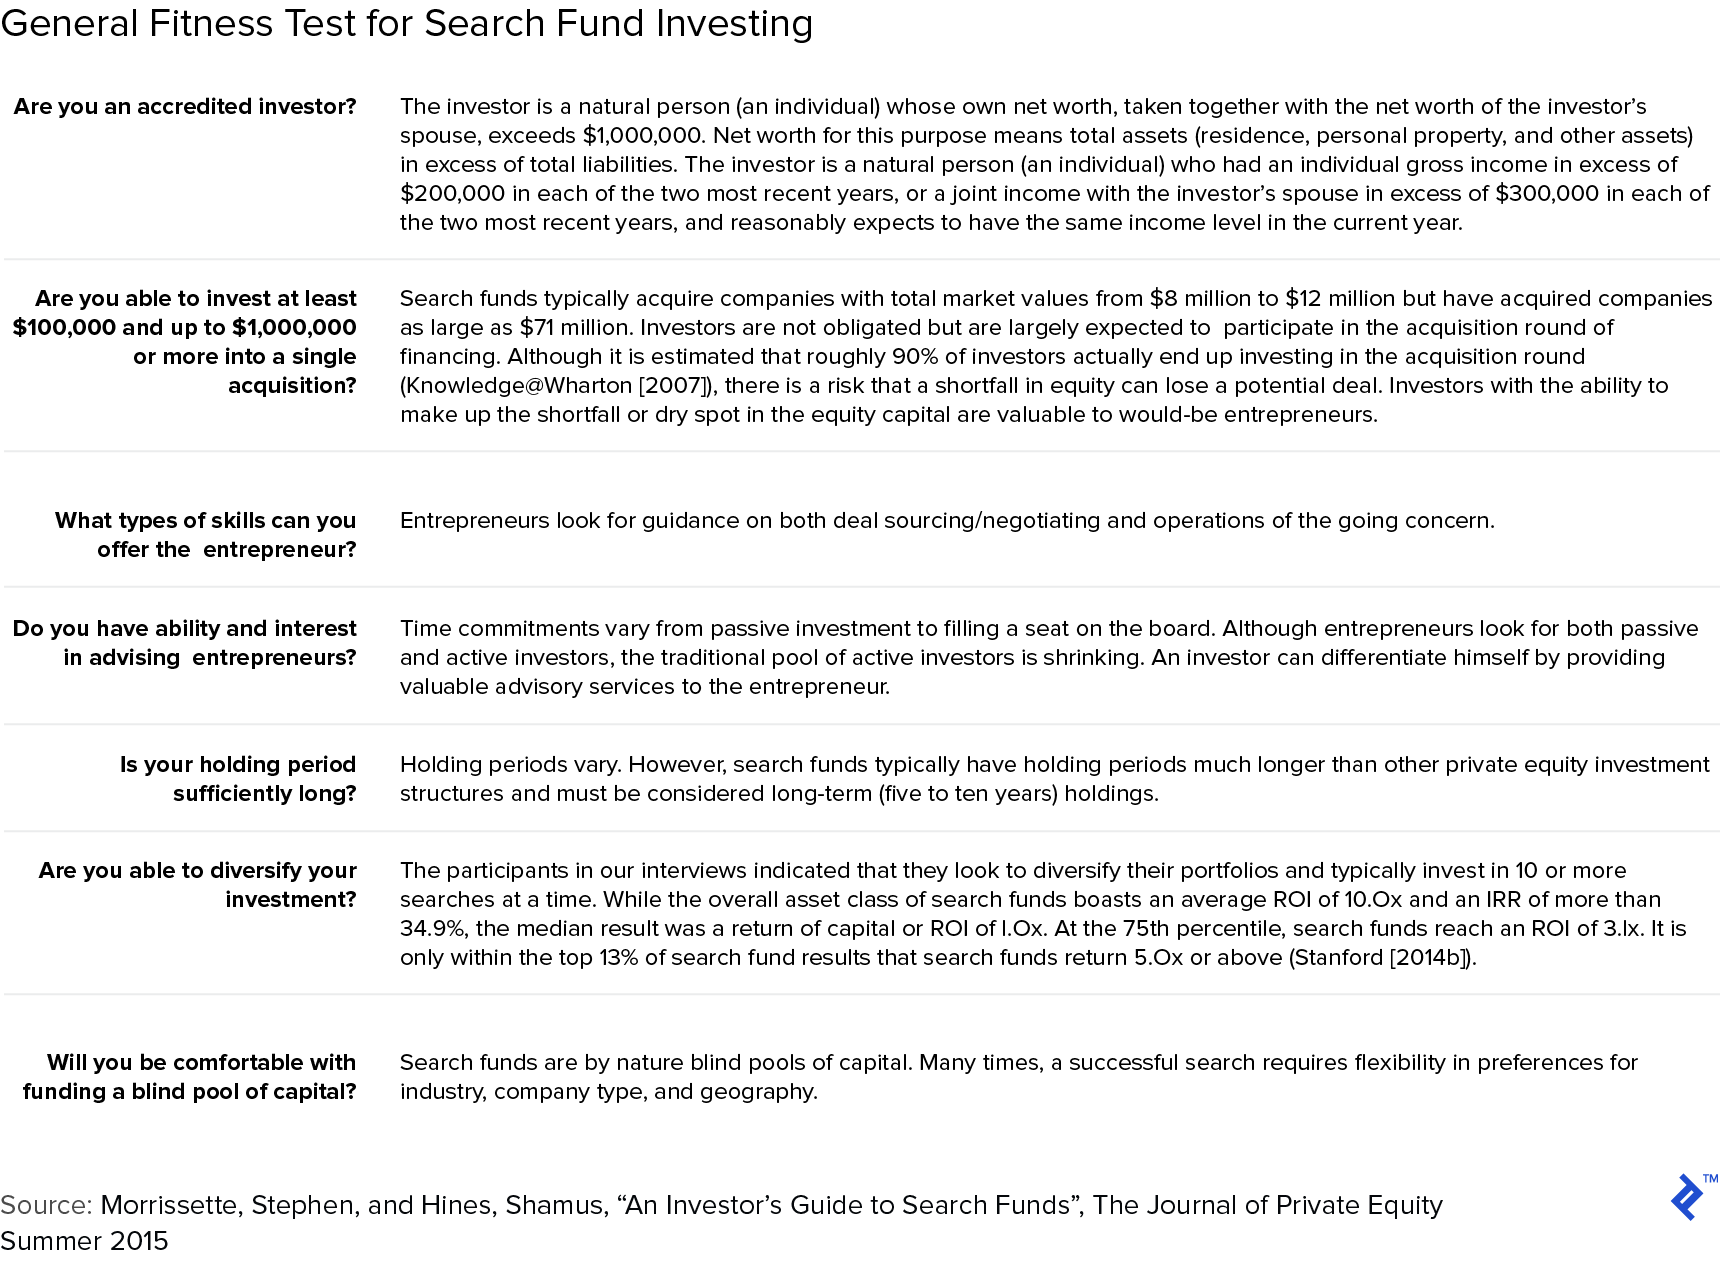 Table: General Fitness Test for Search Fund Investing